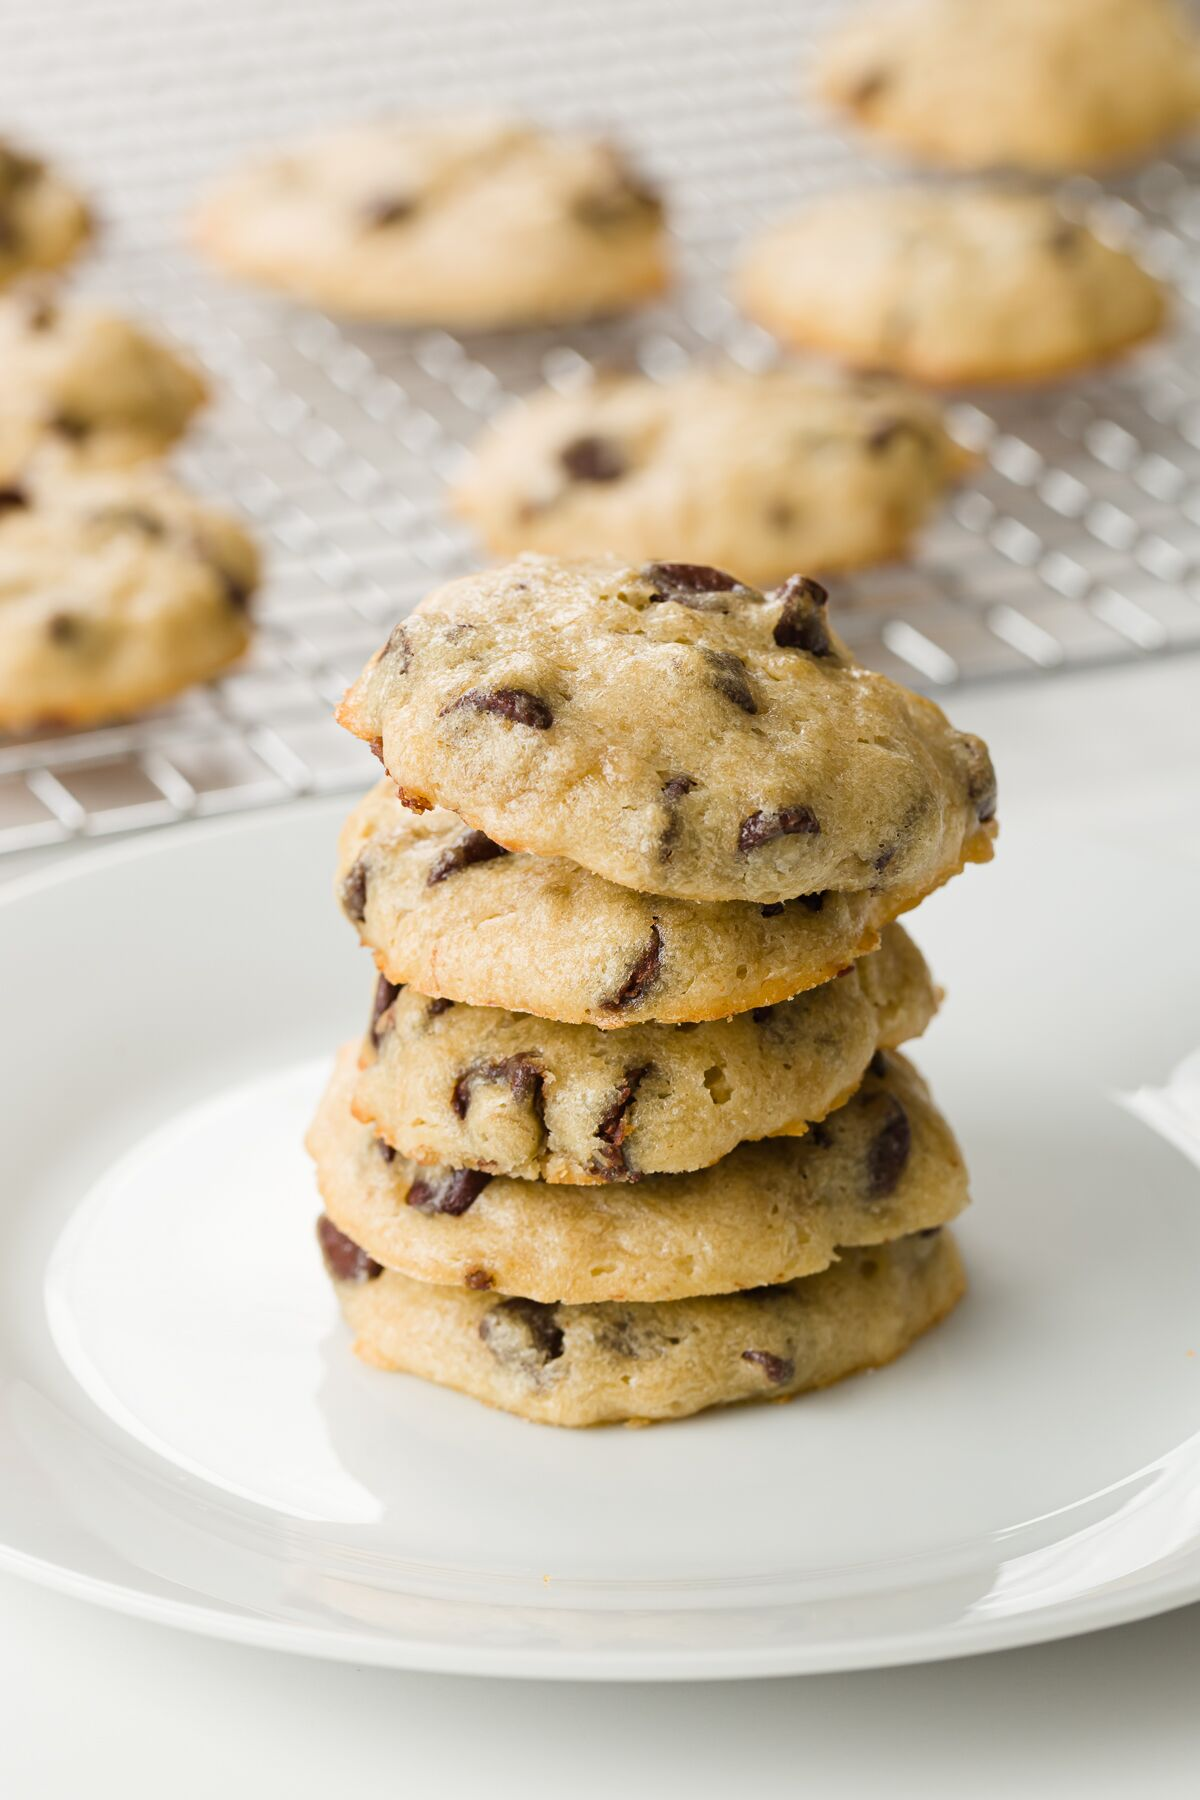 Stack of cookies on a white plate with a cooling rack of cookies in the background